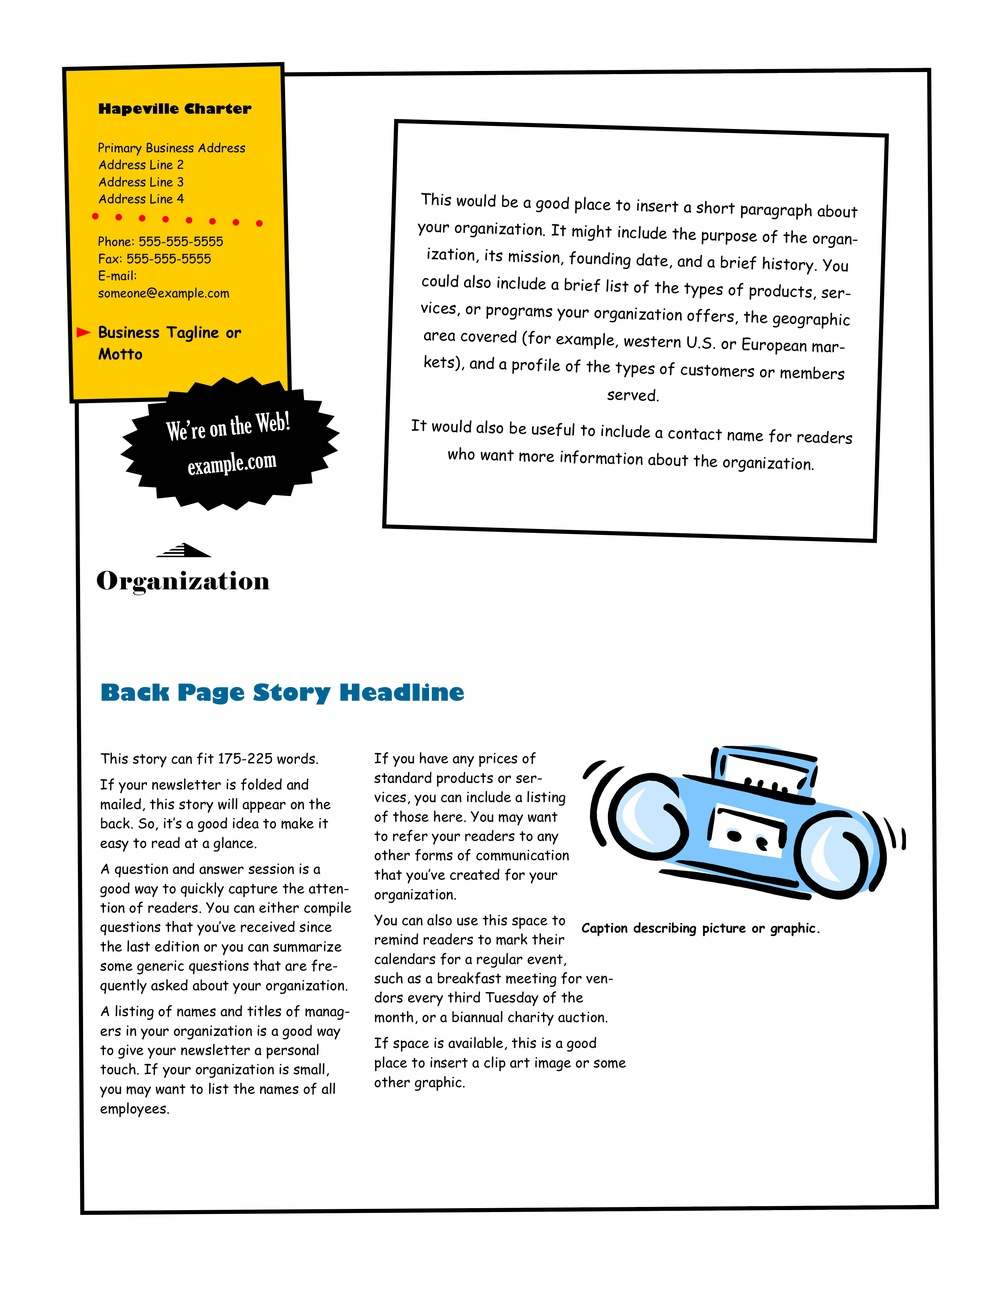 Newsletter Image8th Grade October 6 6.jpeg